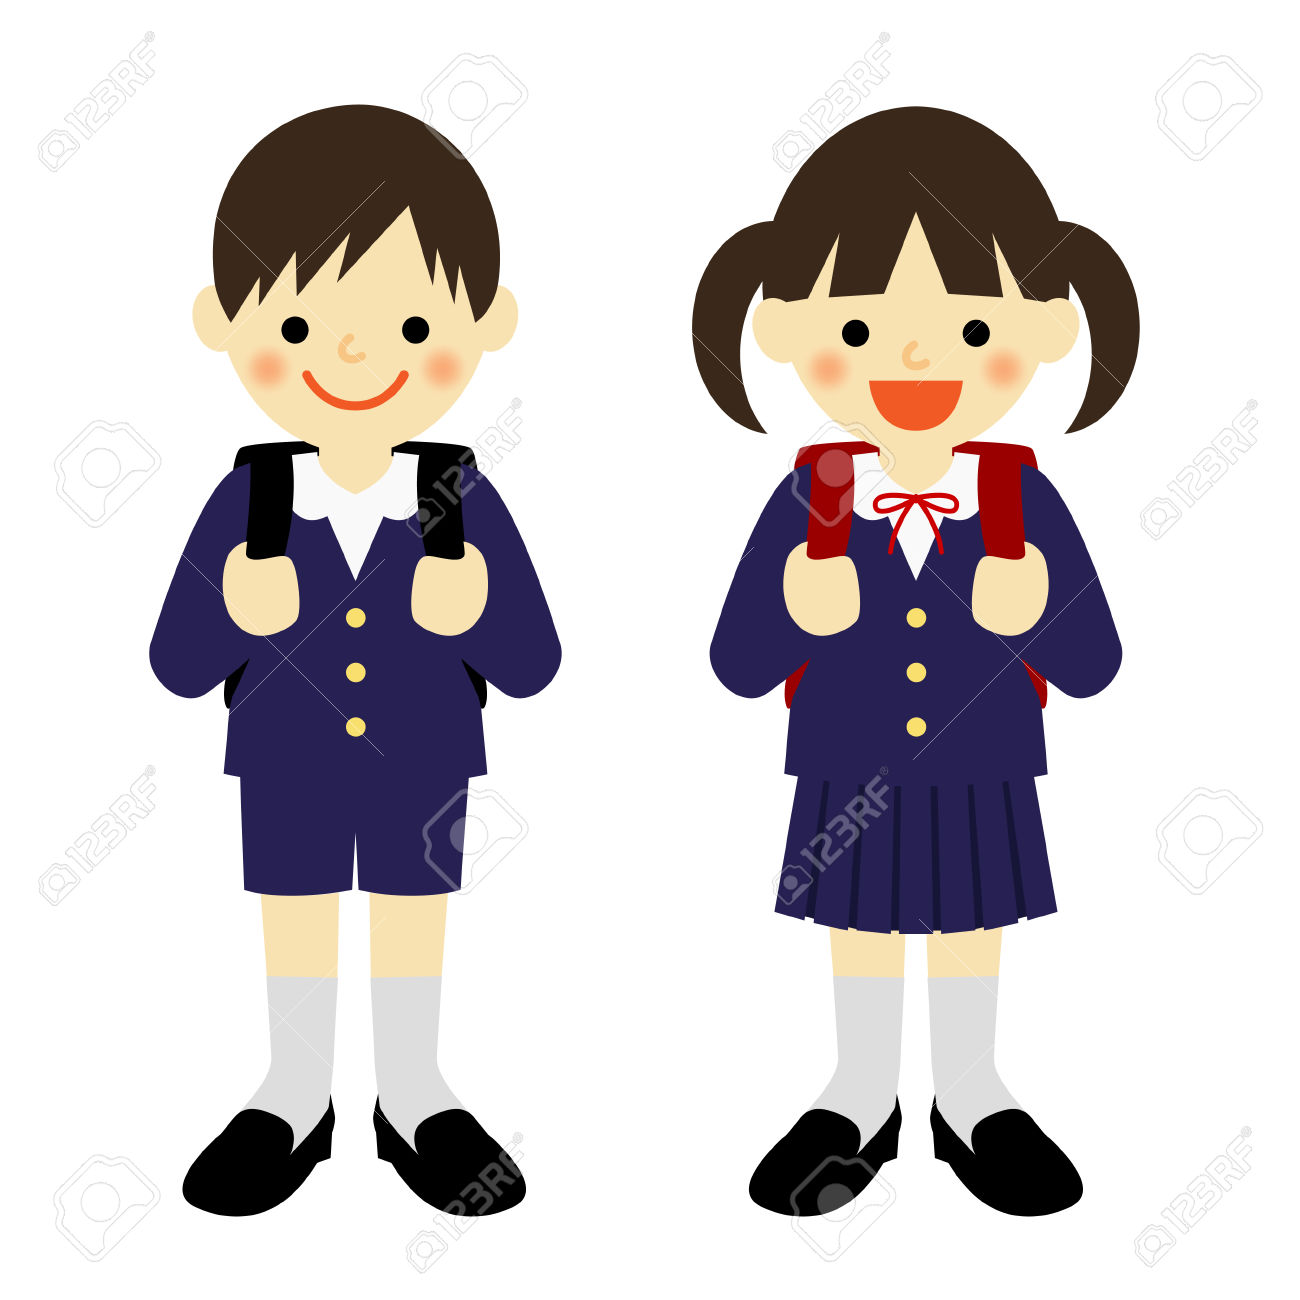 School Uniform Clipart Free Download Clip Art.